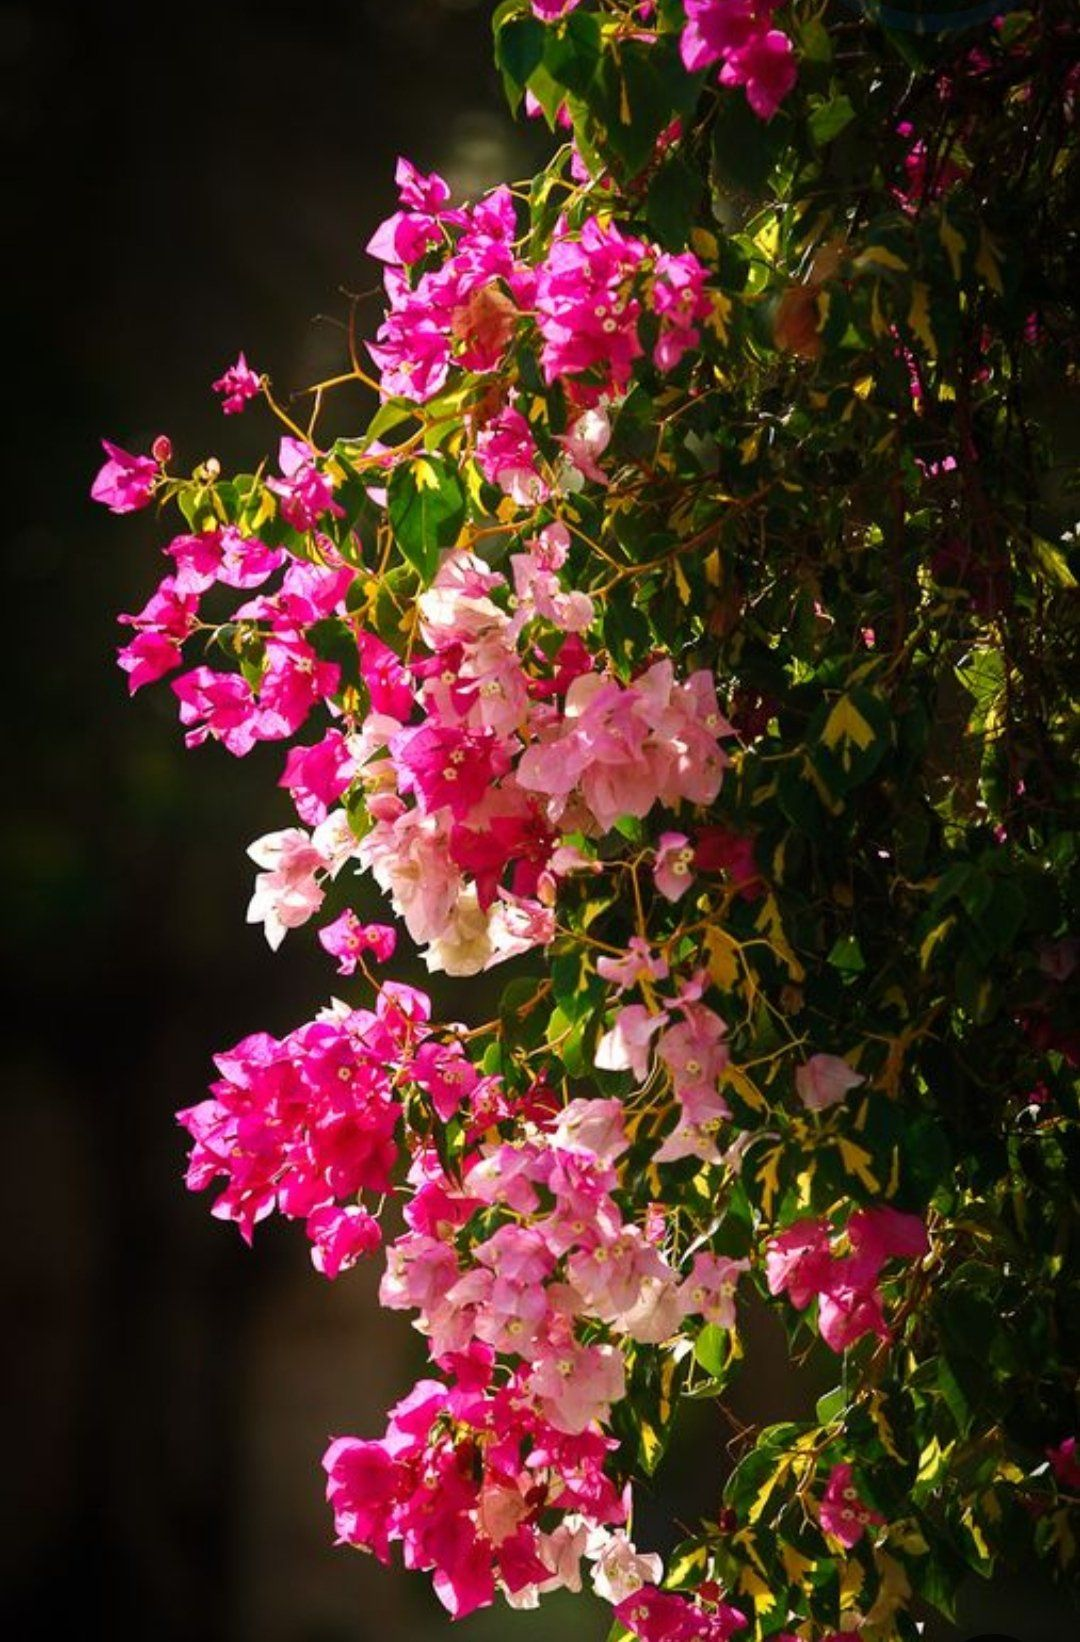 Martina On Twitter Flowers Photography Wallpaper Wallpaper Nature Flowers Beautiful Flowers Wallpapers Fantastic flower wallpaper for